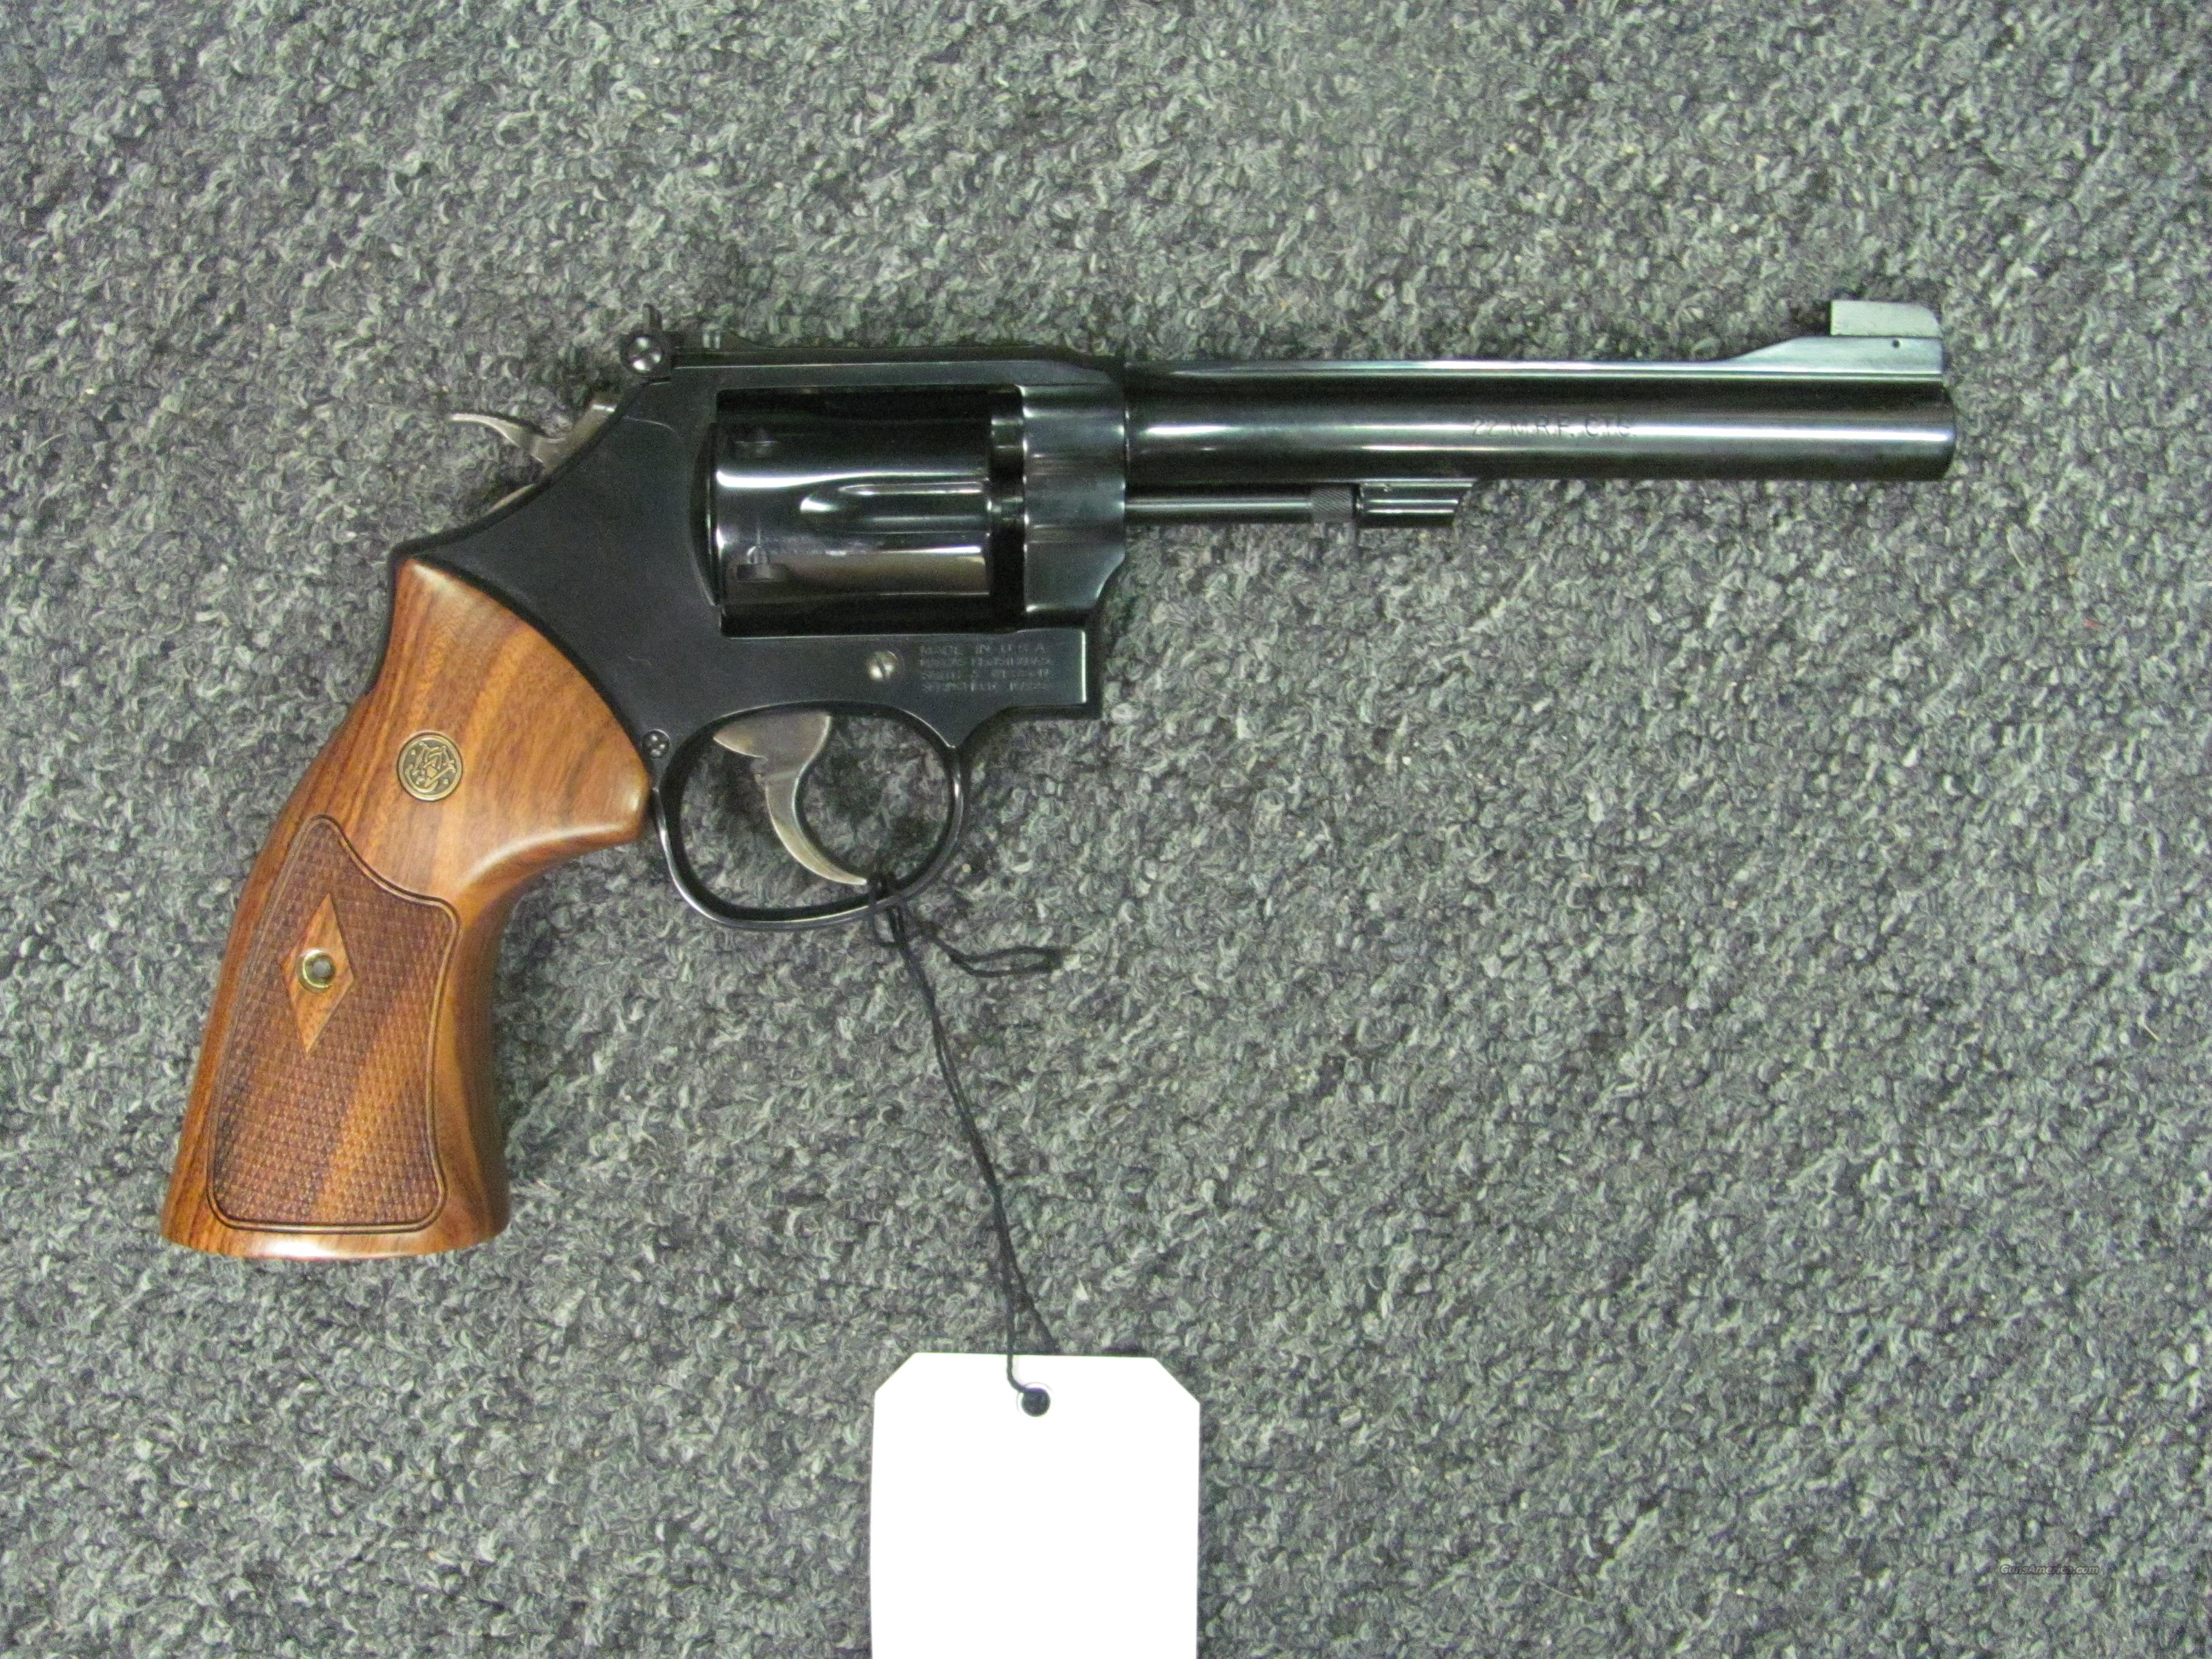 48-7  Guns > Pistols > Smith & Wesson Revolvers > Full Frame Revolver